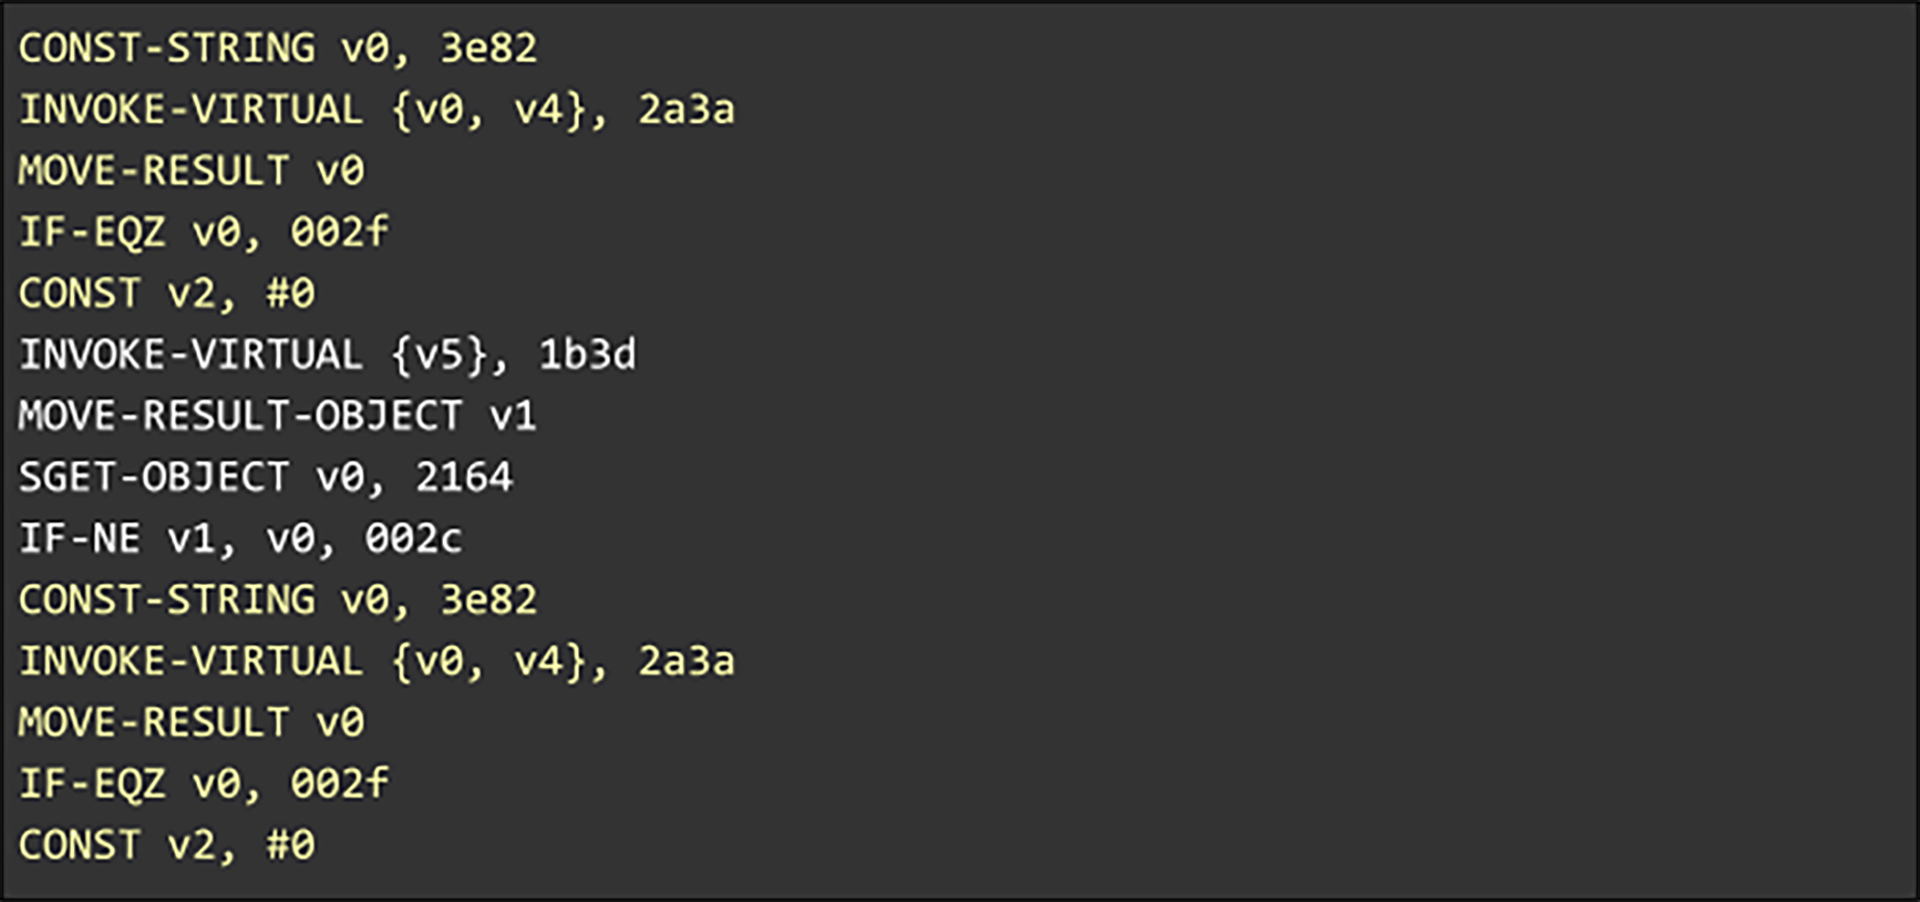 Grouping the code in this manner also further reduces distances by counting the number of logical units between repeating occurrences, as measured along the AST, instead of measuring the number of bytes.